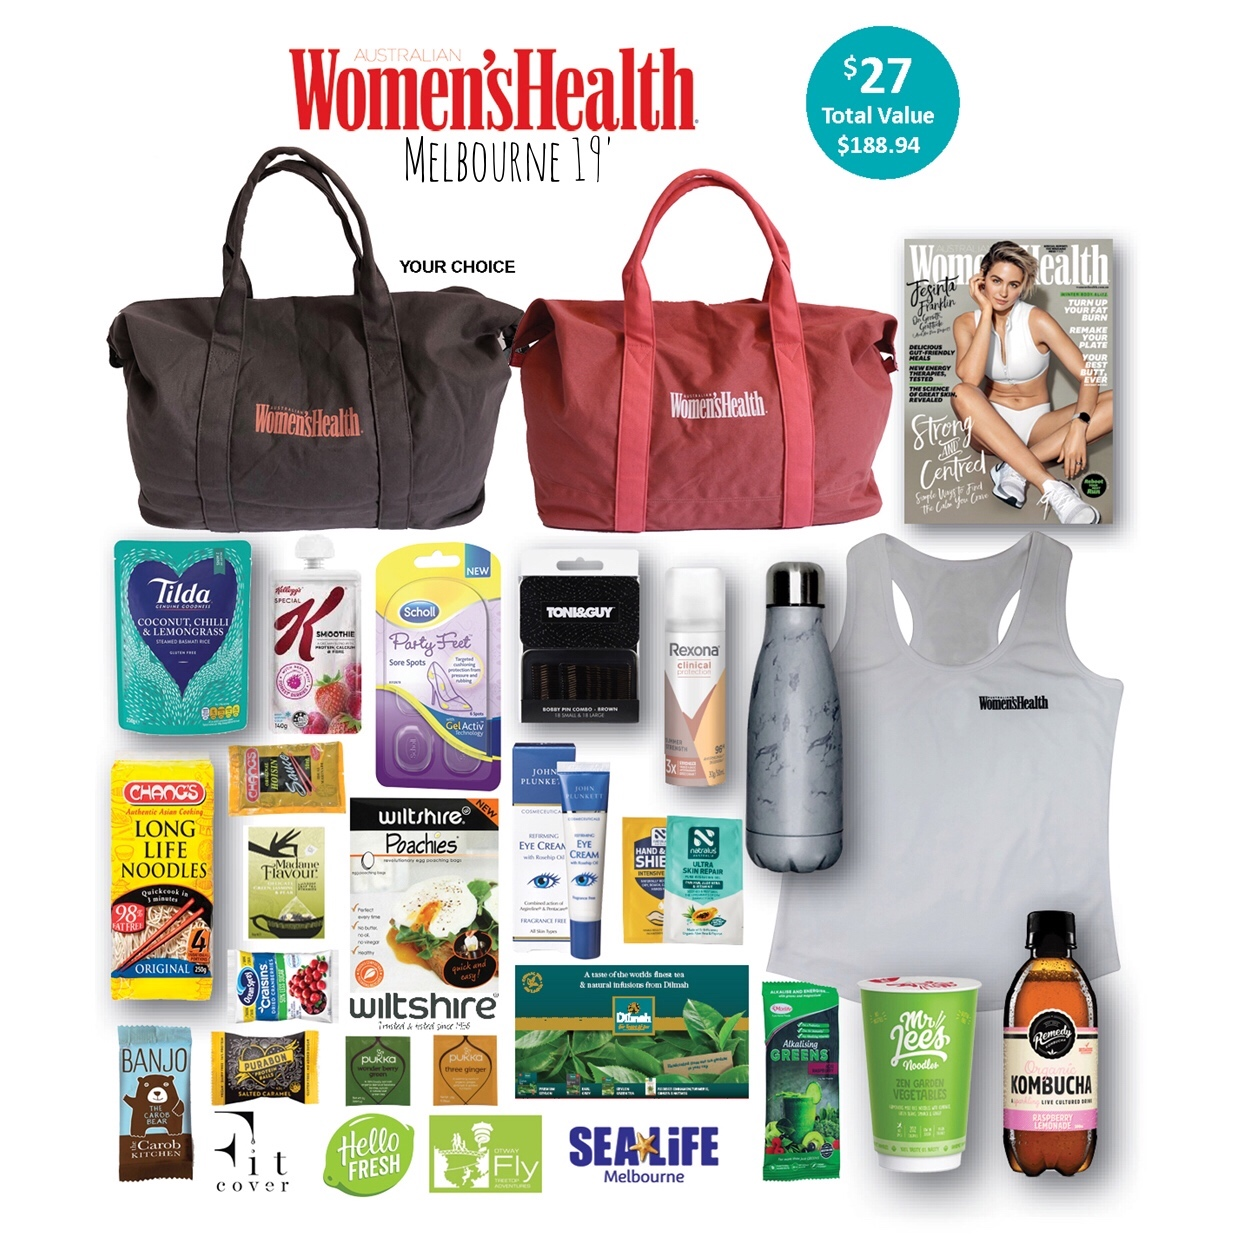 Women's Health - Melbourne 19'